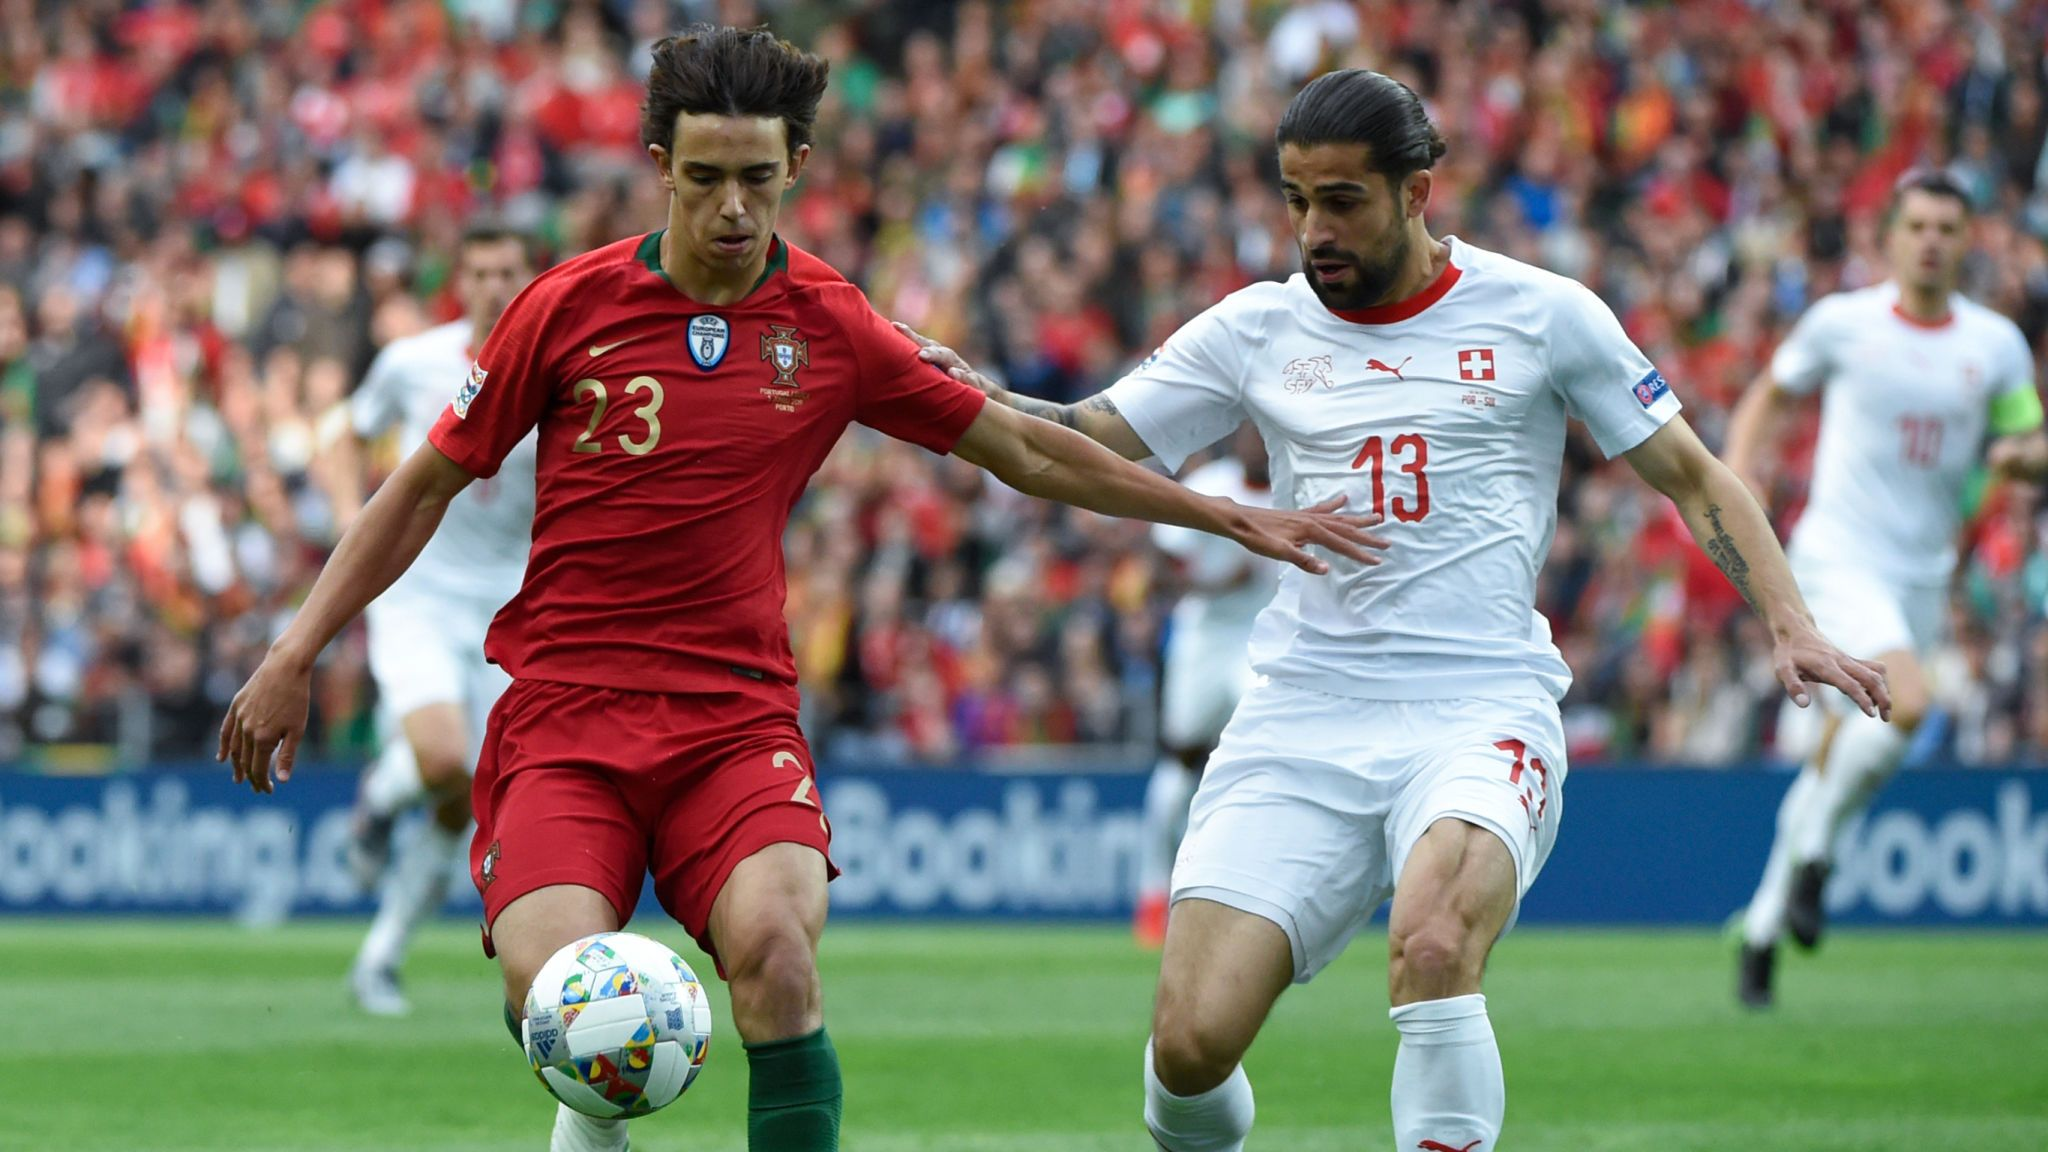 Joao Felix Is Rated At 106m But He Struggled On His Joao Felix 1382147 Hd Wallpaper Backgrounds Download